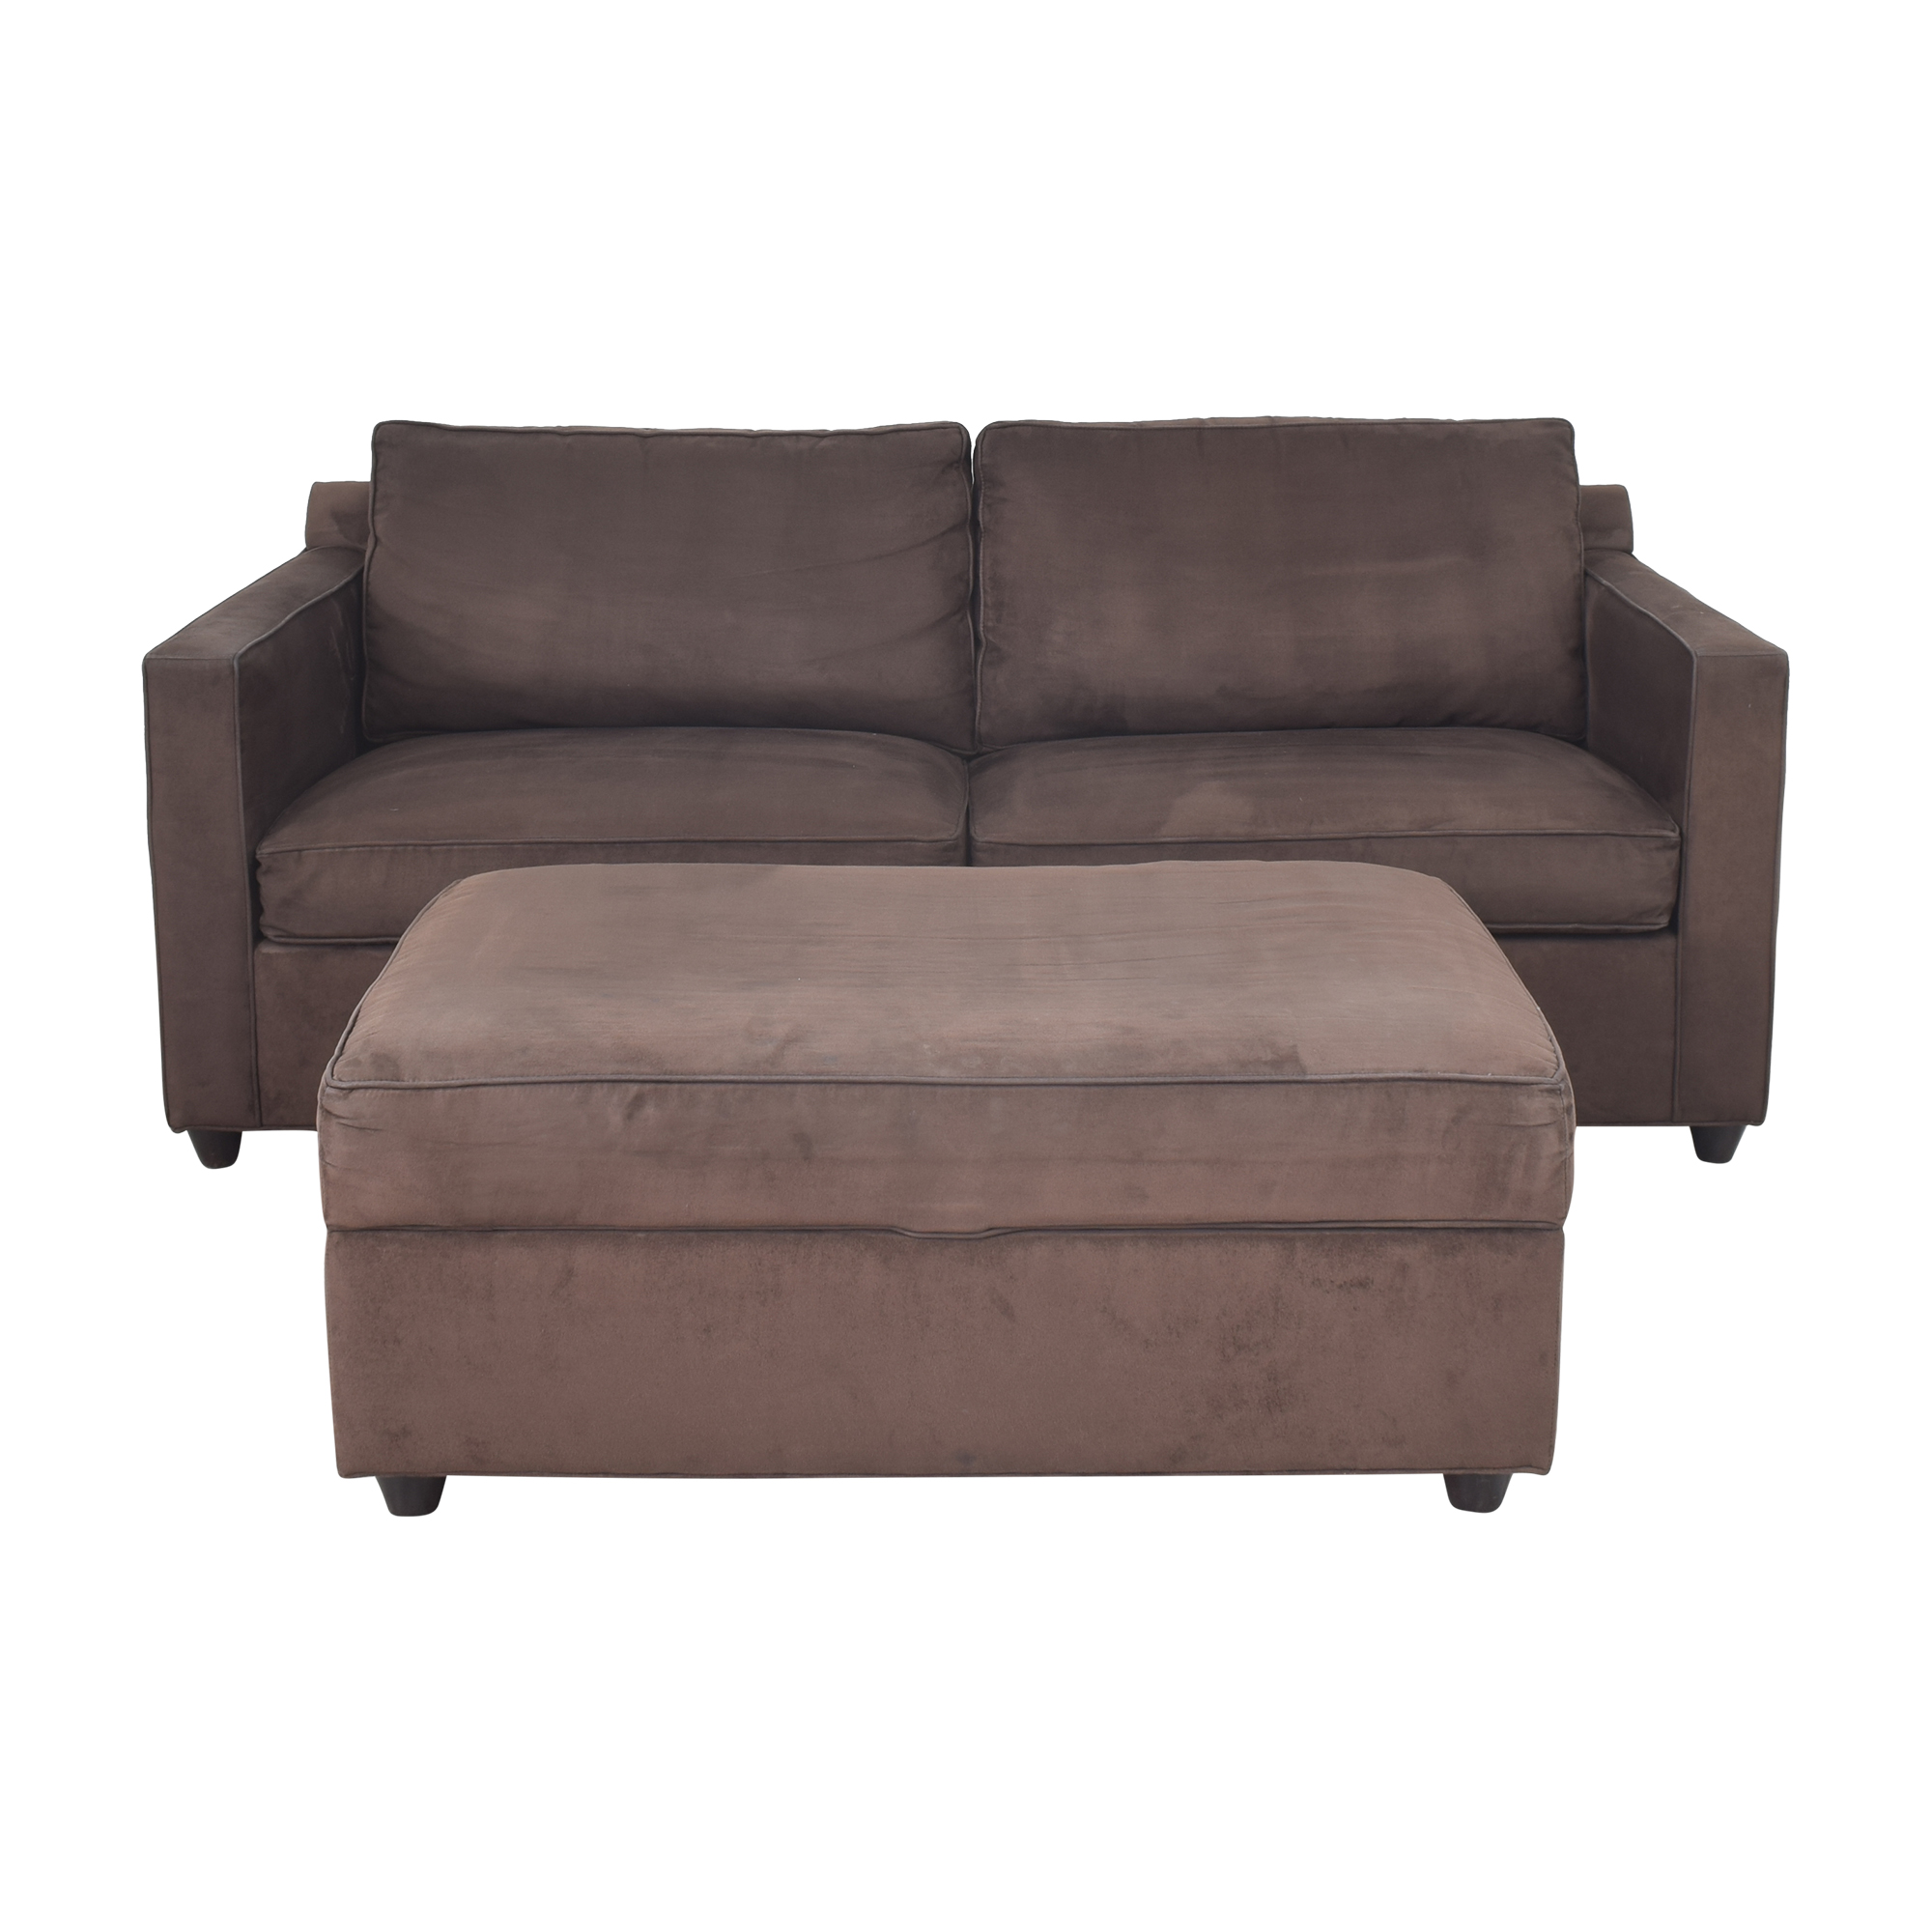 Crate & Barrel Crate & Barrel Two Cushion Sofa with Storage Ottoman coupon